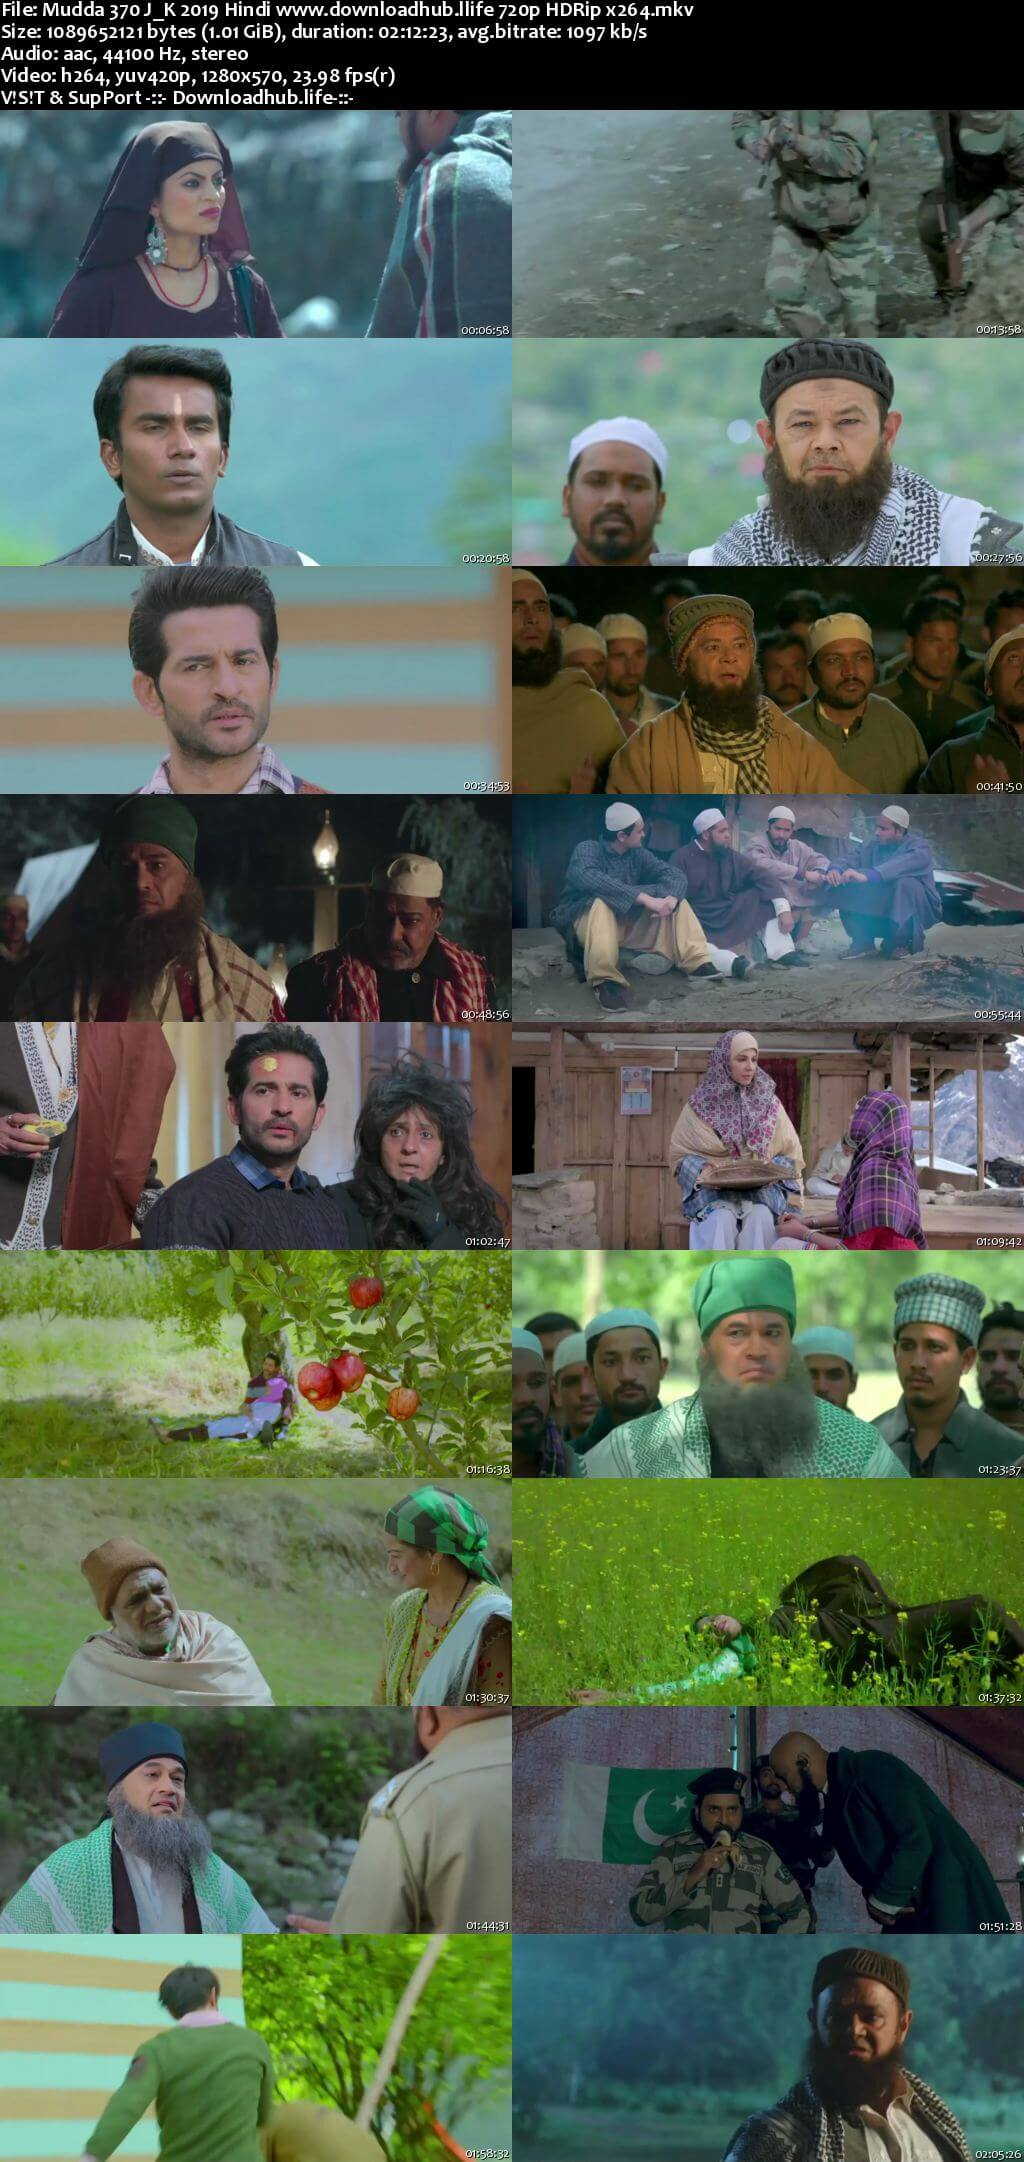 Mudda 370 J&K 2019 Hindi 720p HDRip x264